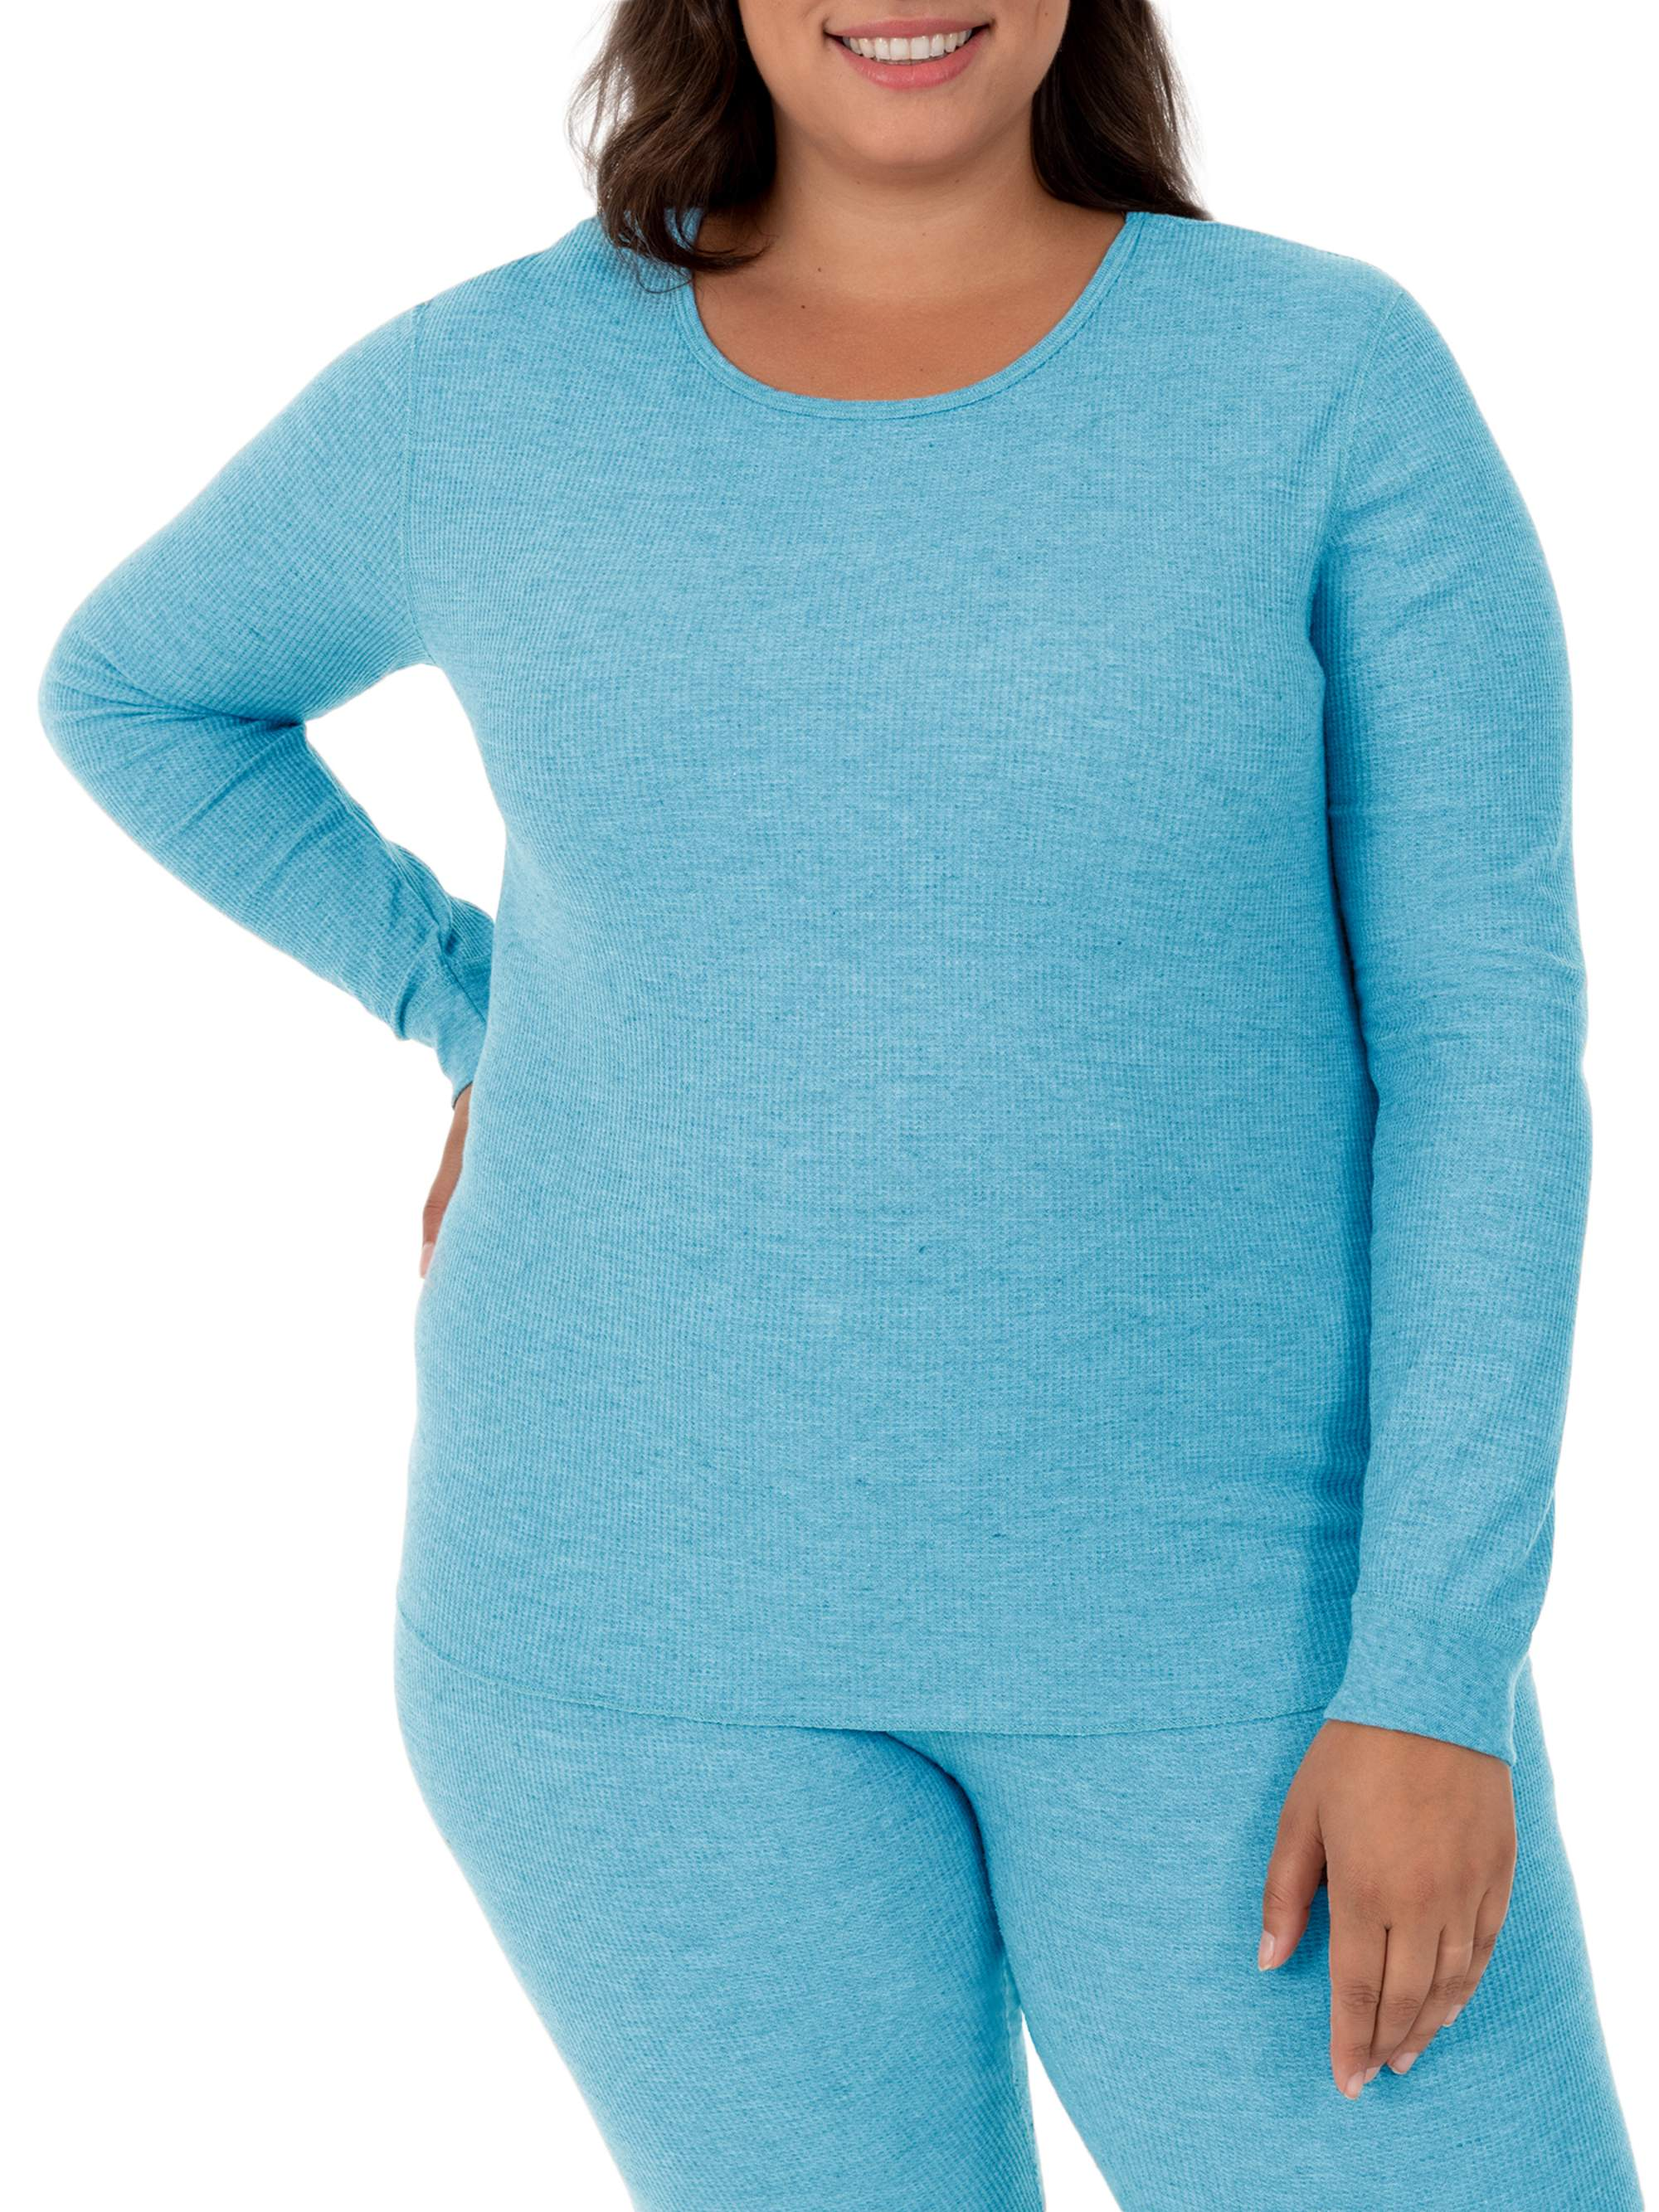 Fit for Me by Fruit of the Loom Women's and Women's Plus Size Waffle Thermal Underwear Crew Top